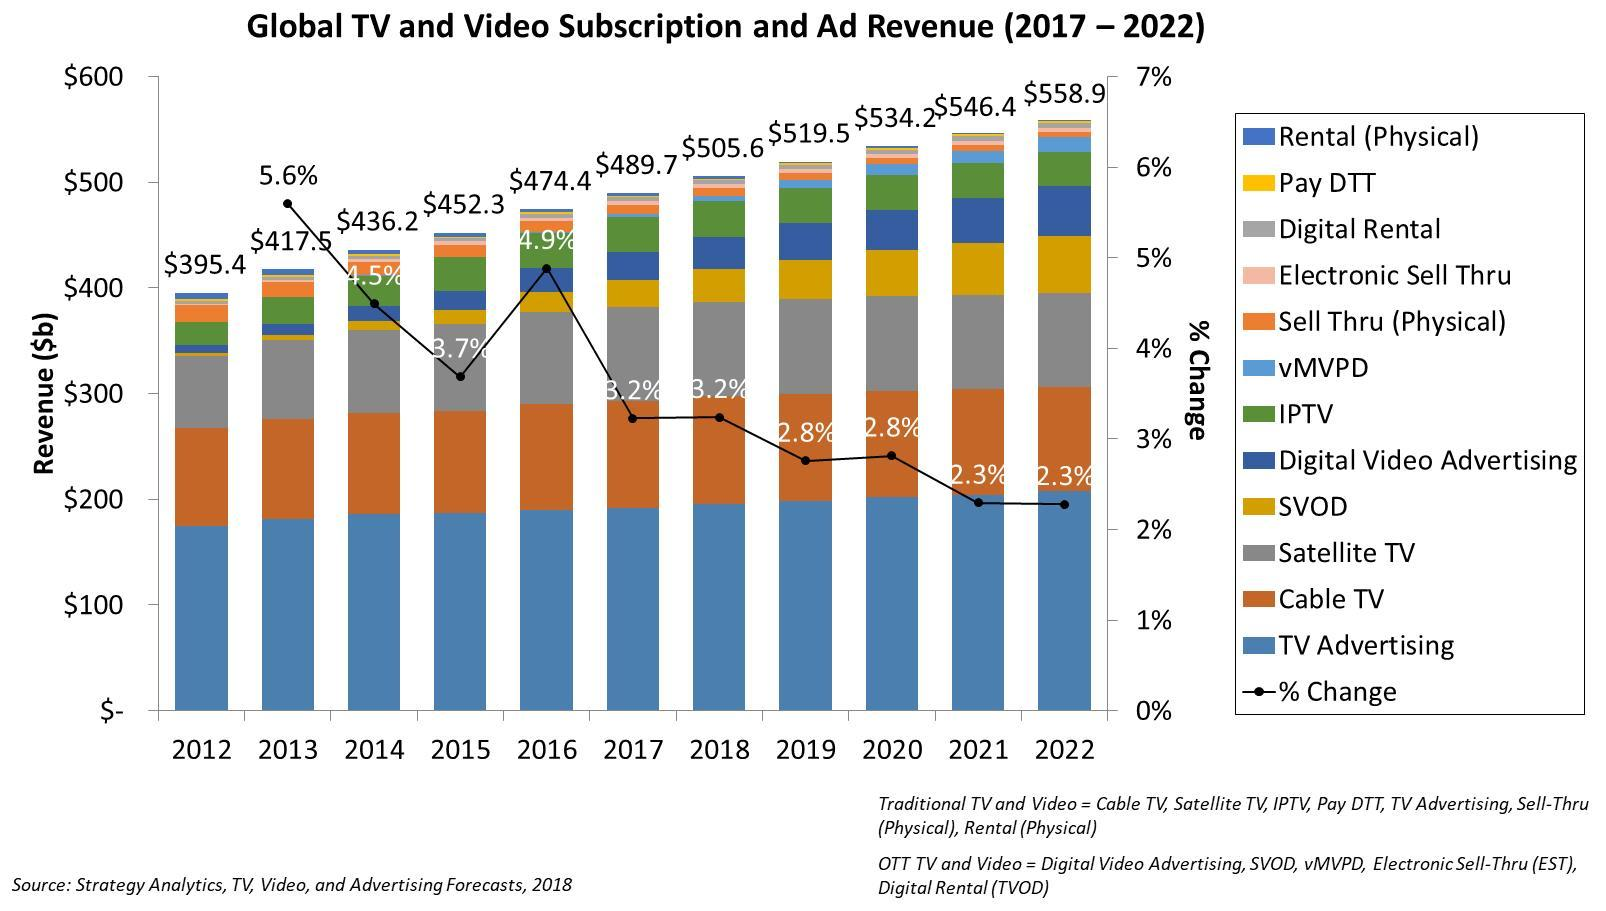 Global TV and video service revenue to reach US$559bn in